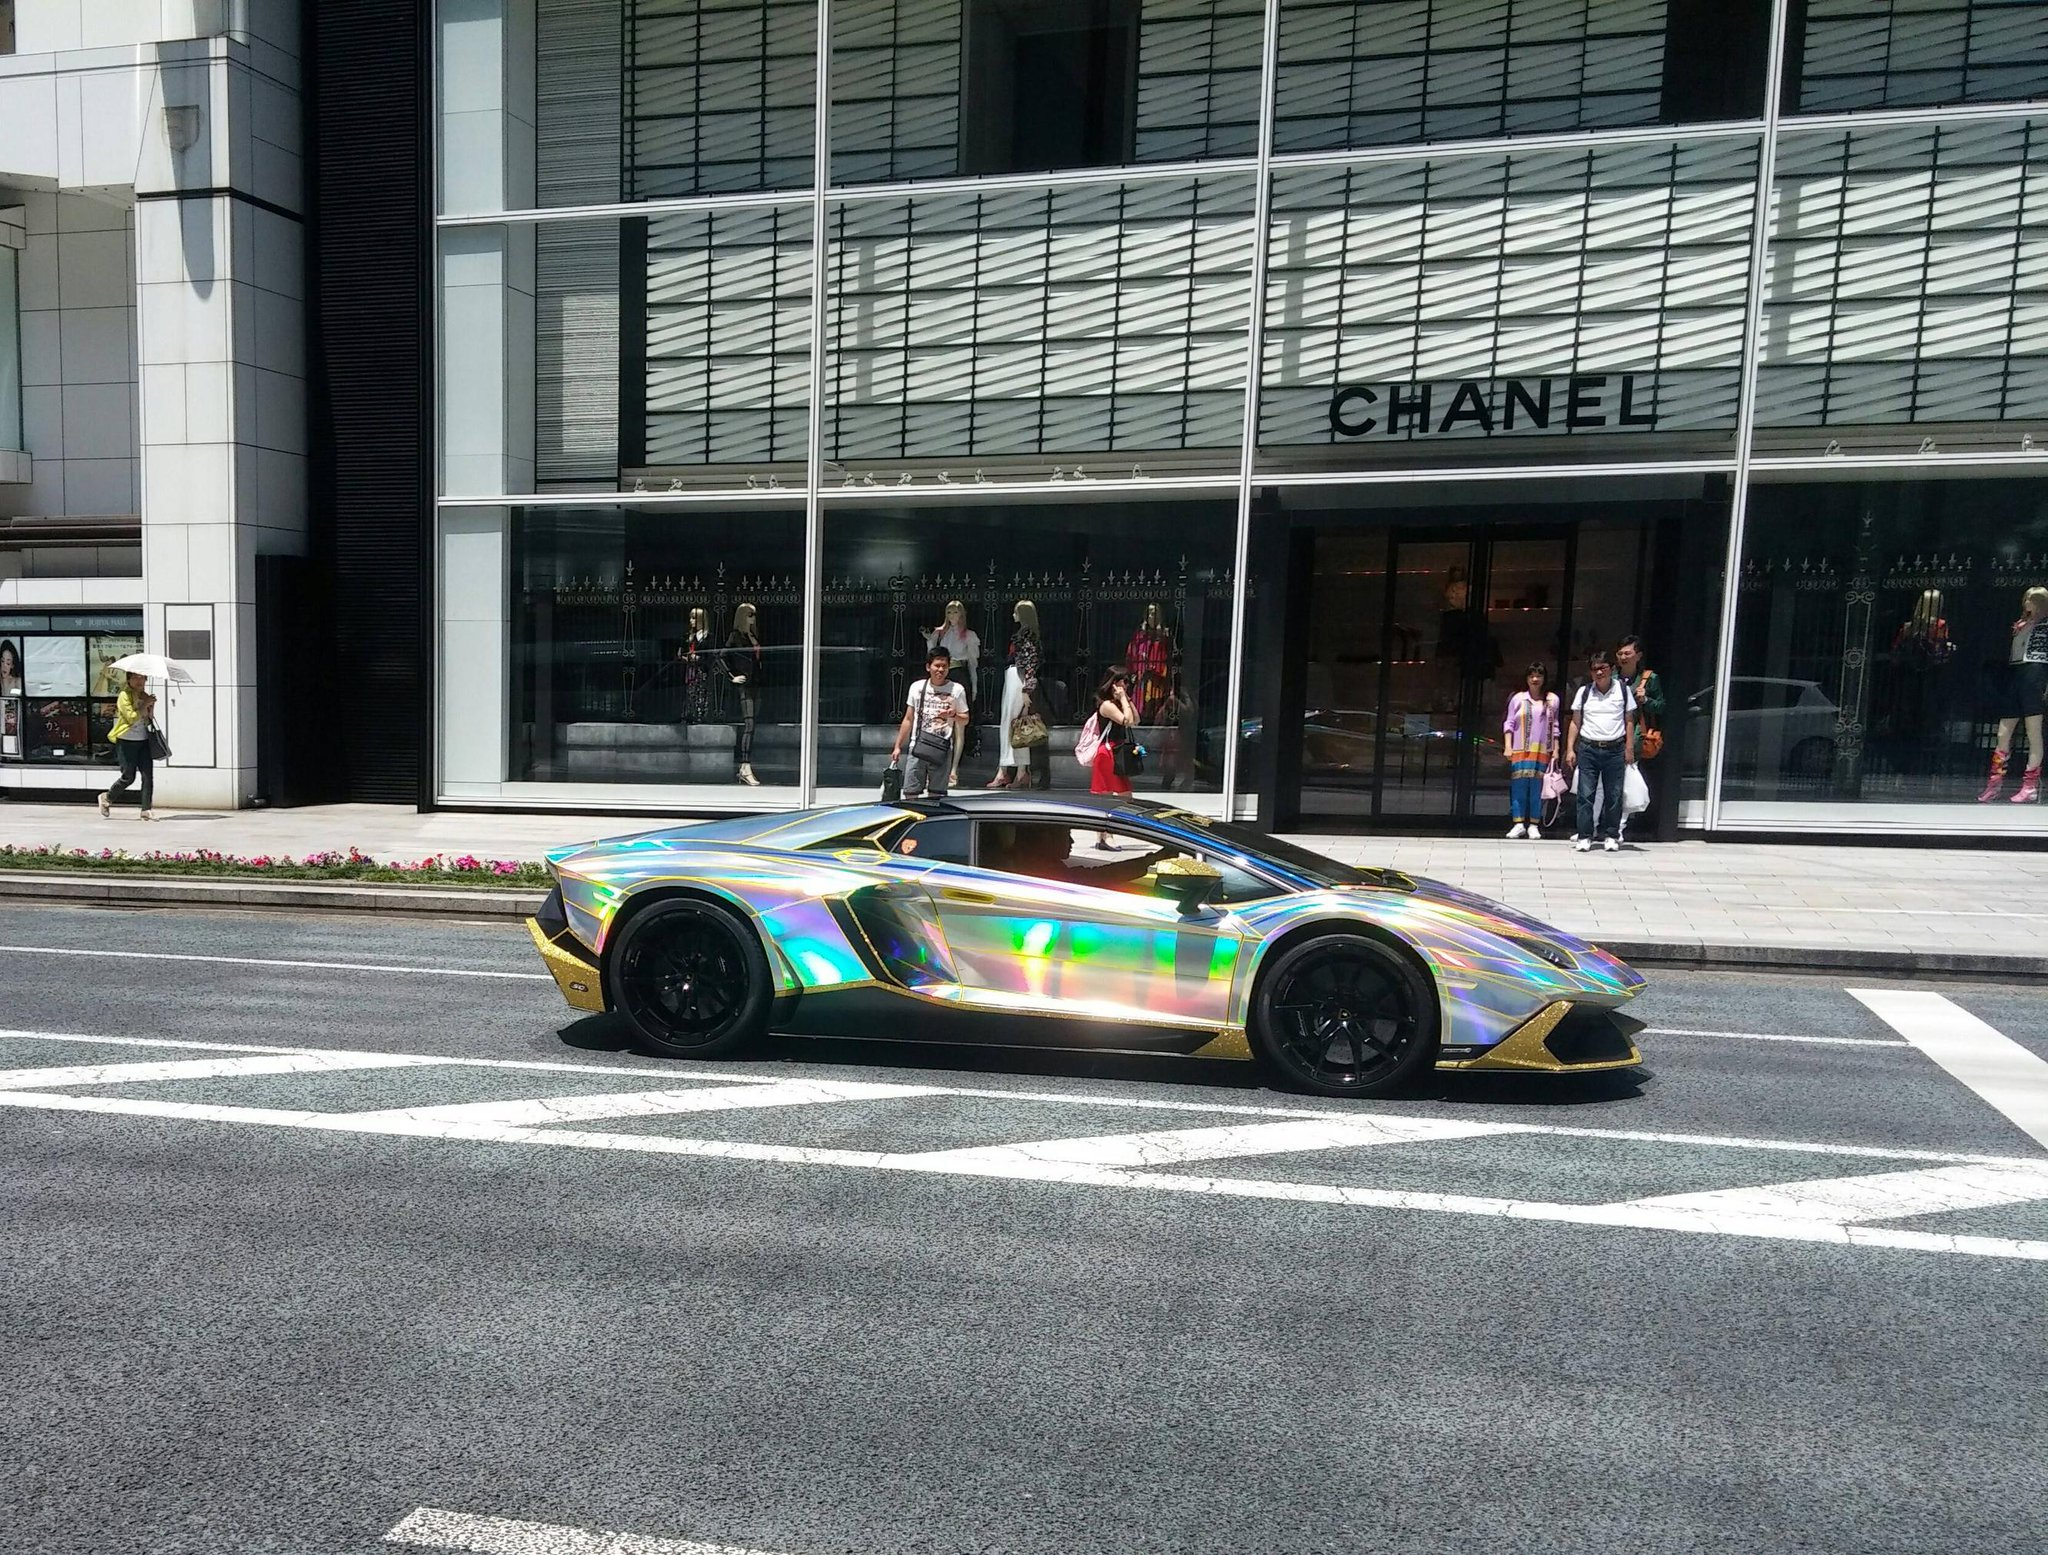 One of the coolest car spotted in Tokyo: http://t.co/vu0xFwDbmC